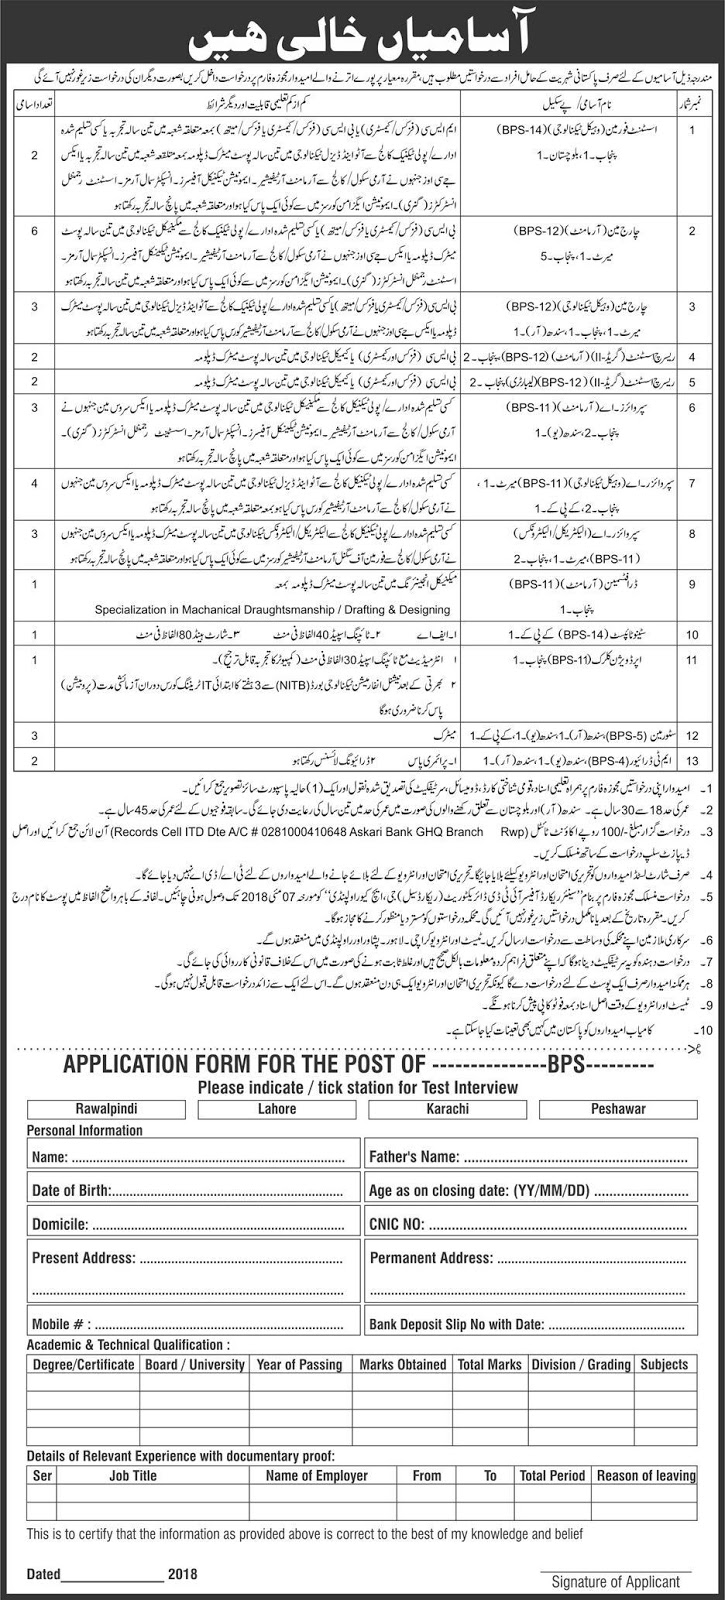 Jobs In Pakistan Army 2018 at Records Cell ITD GHQ Rawalpindi